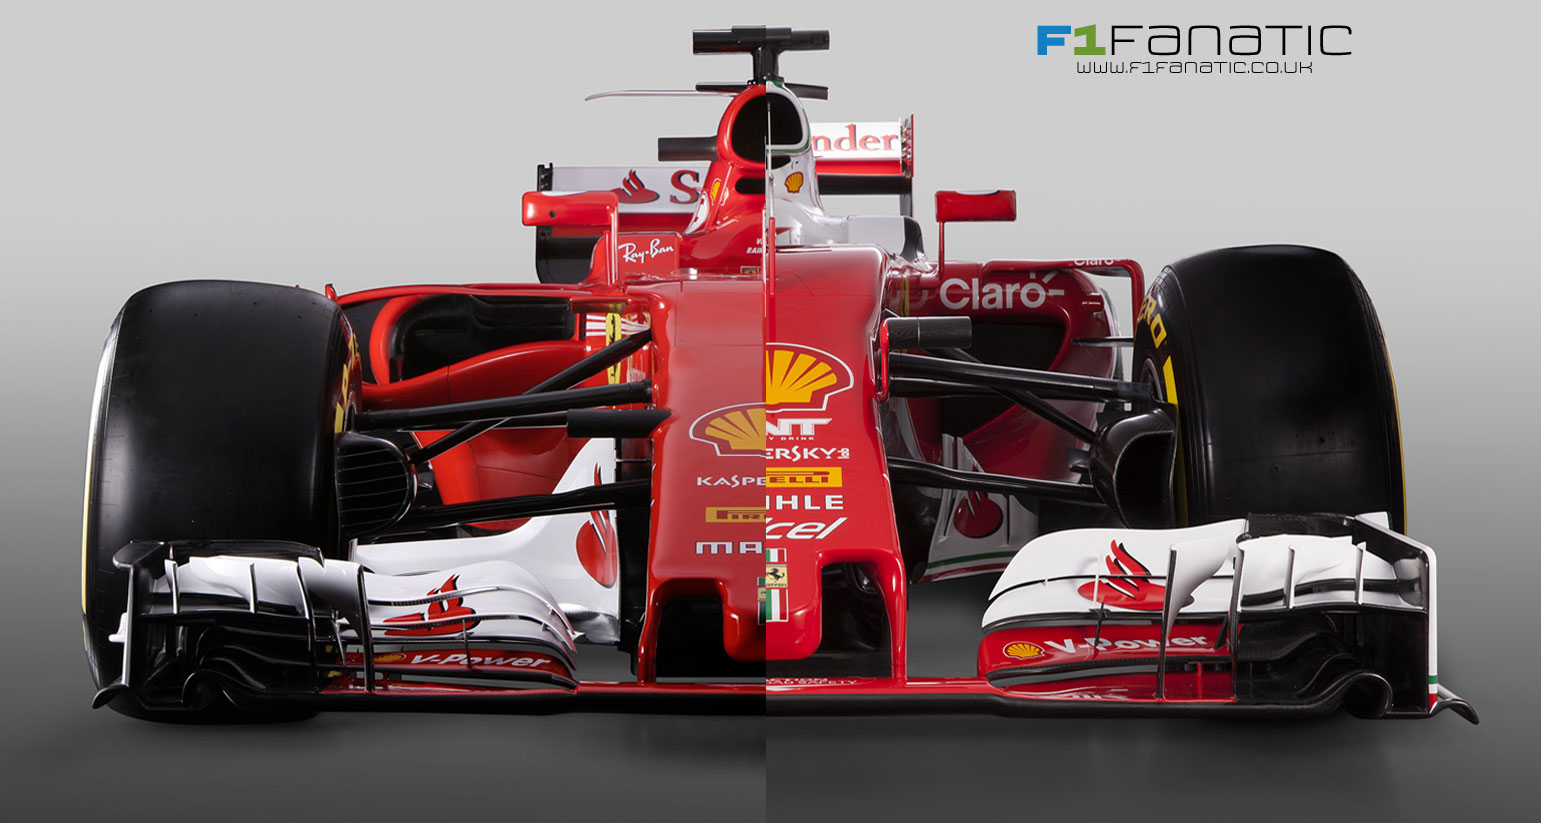 2018 ferrari f1. Delighful Ferrari Compare The New 2017 Ferrari With Last Yearu0027s Model On 2018 Ferrari F1 7